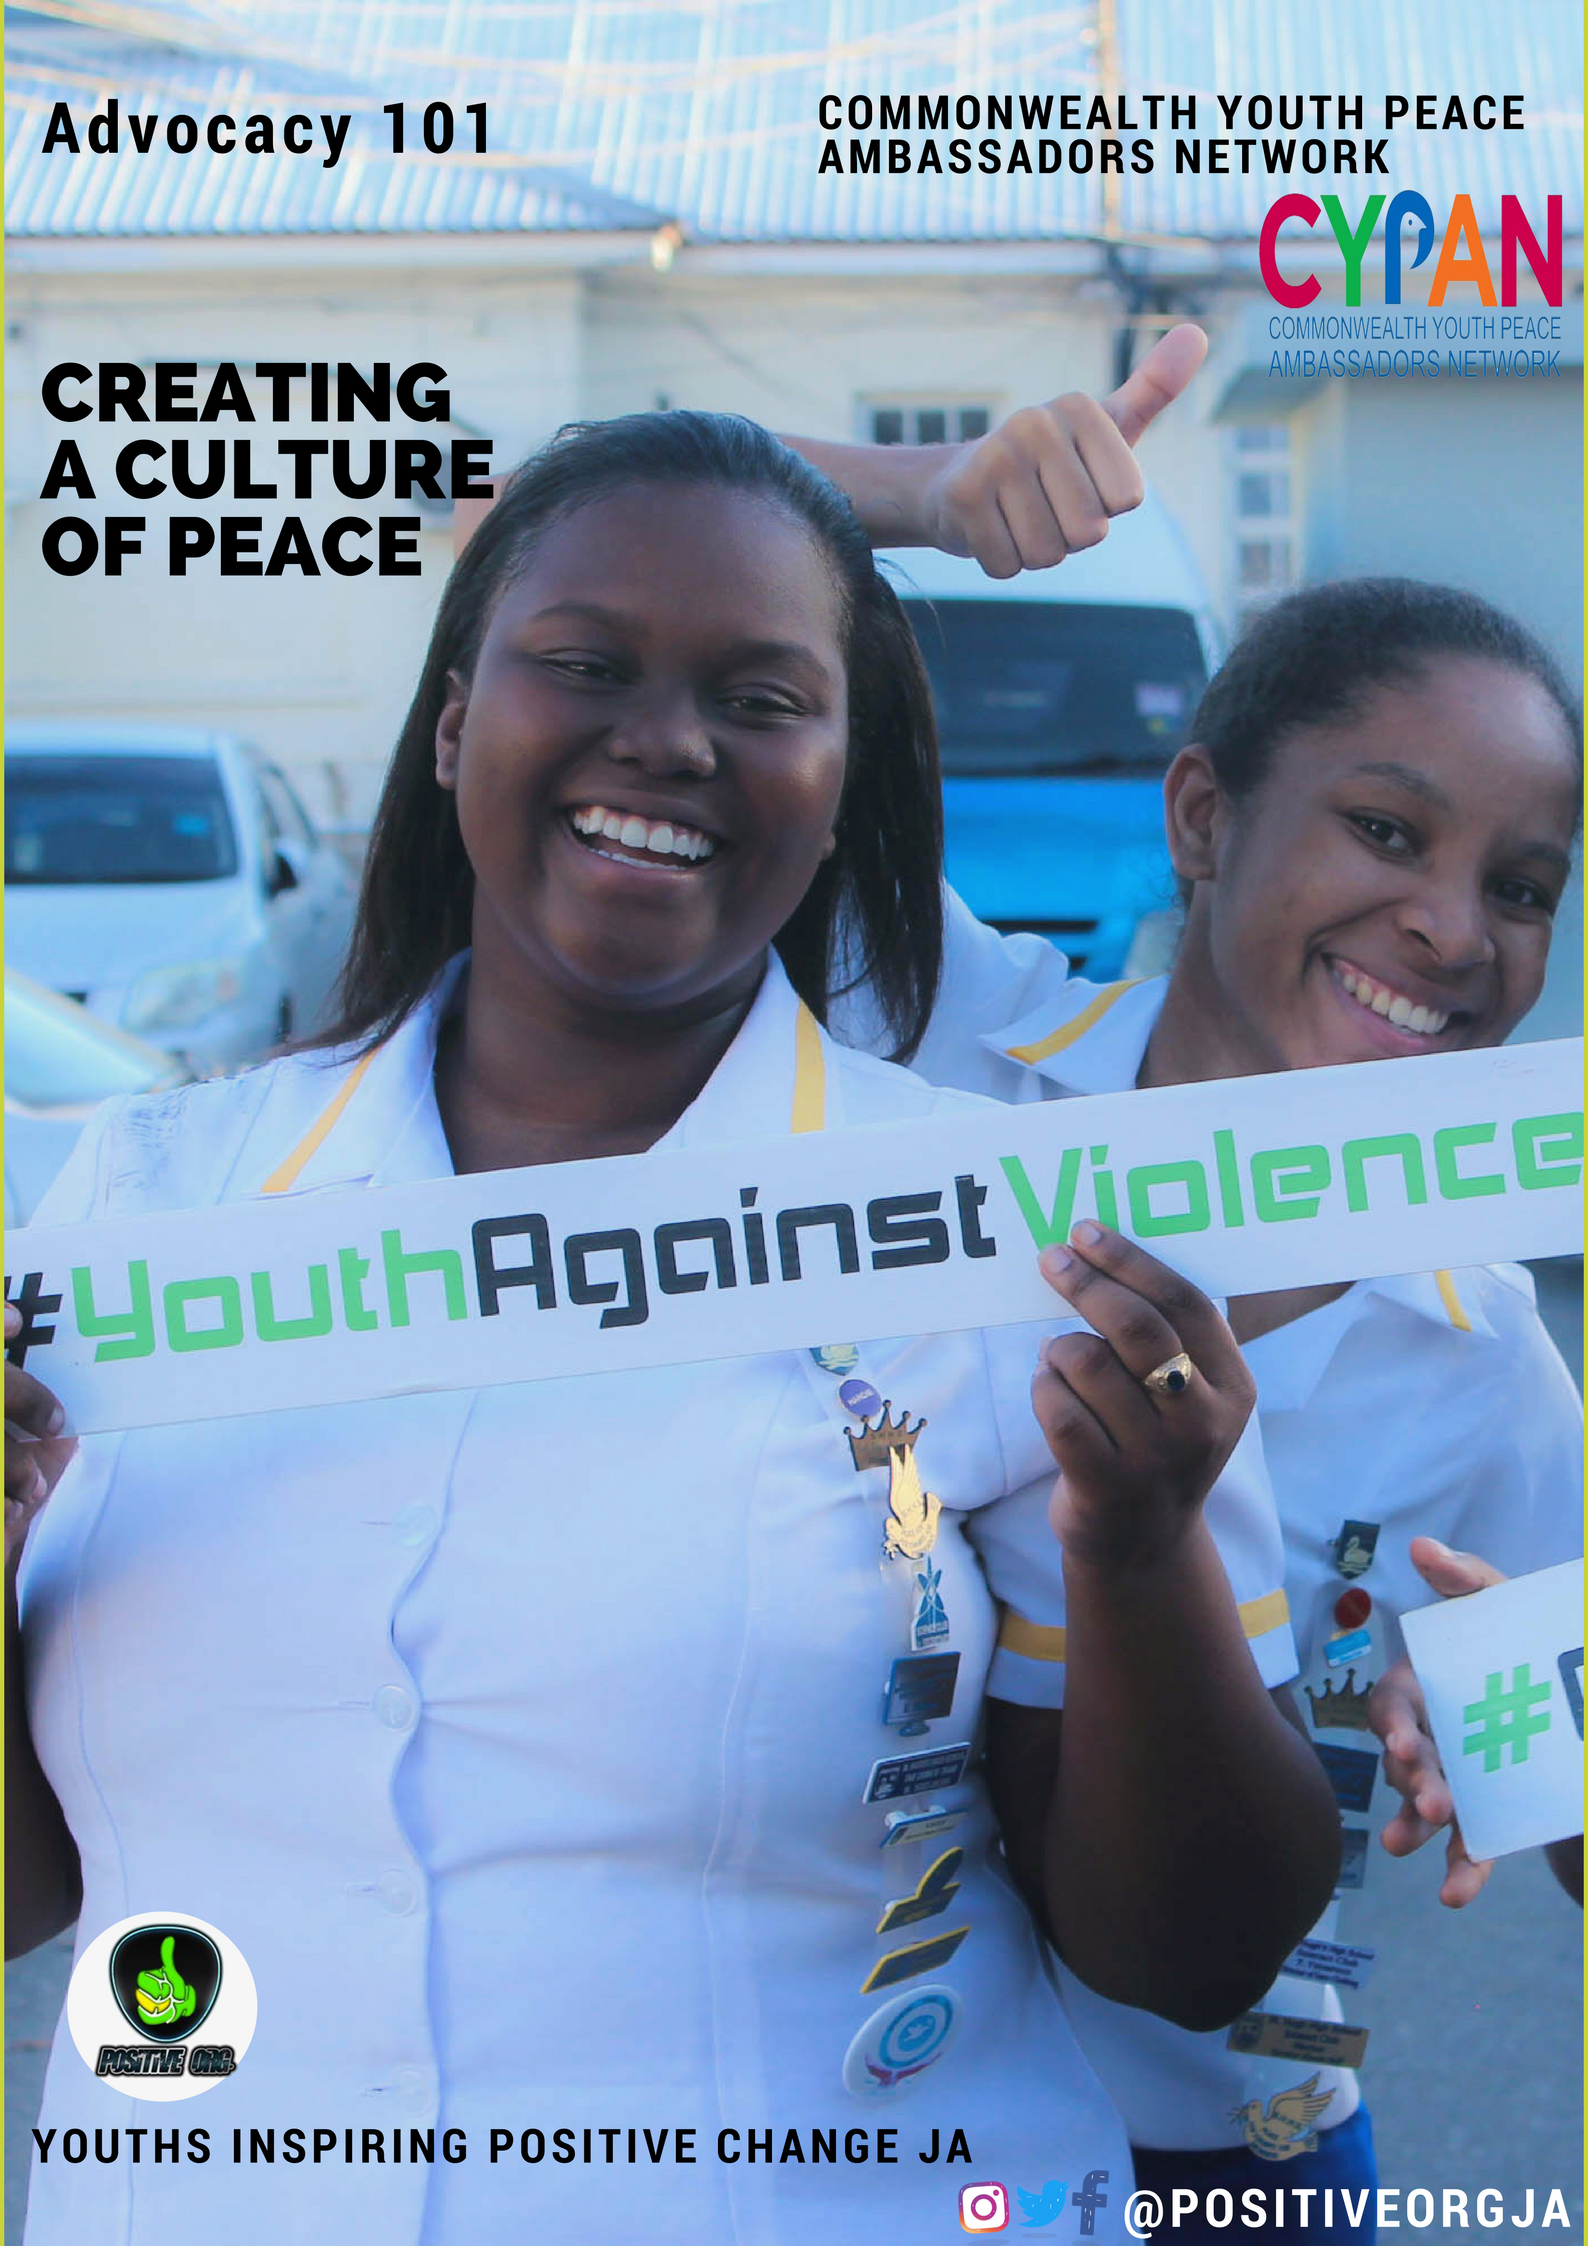 Let's play our part to Create a Culture of Peace